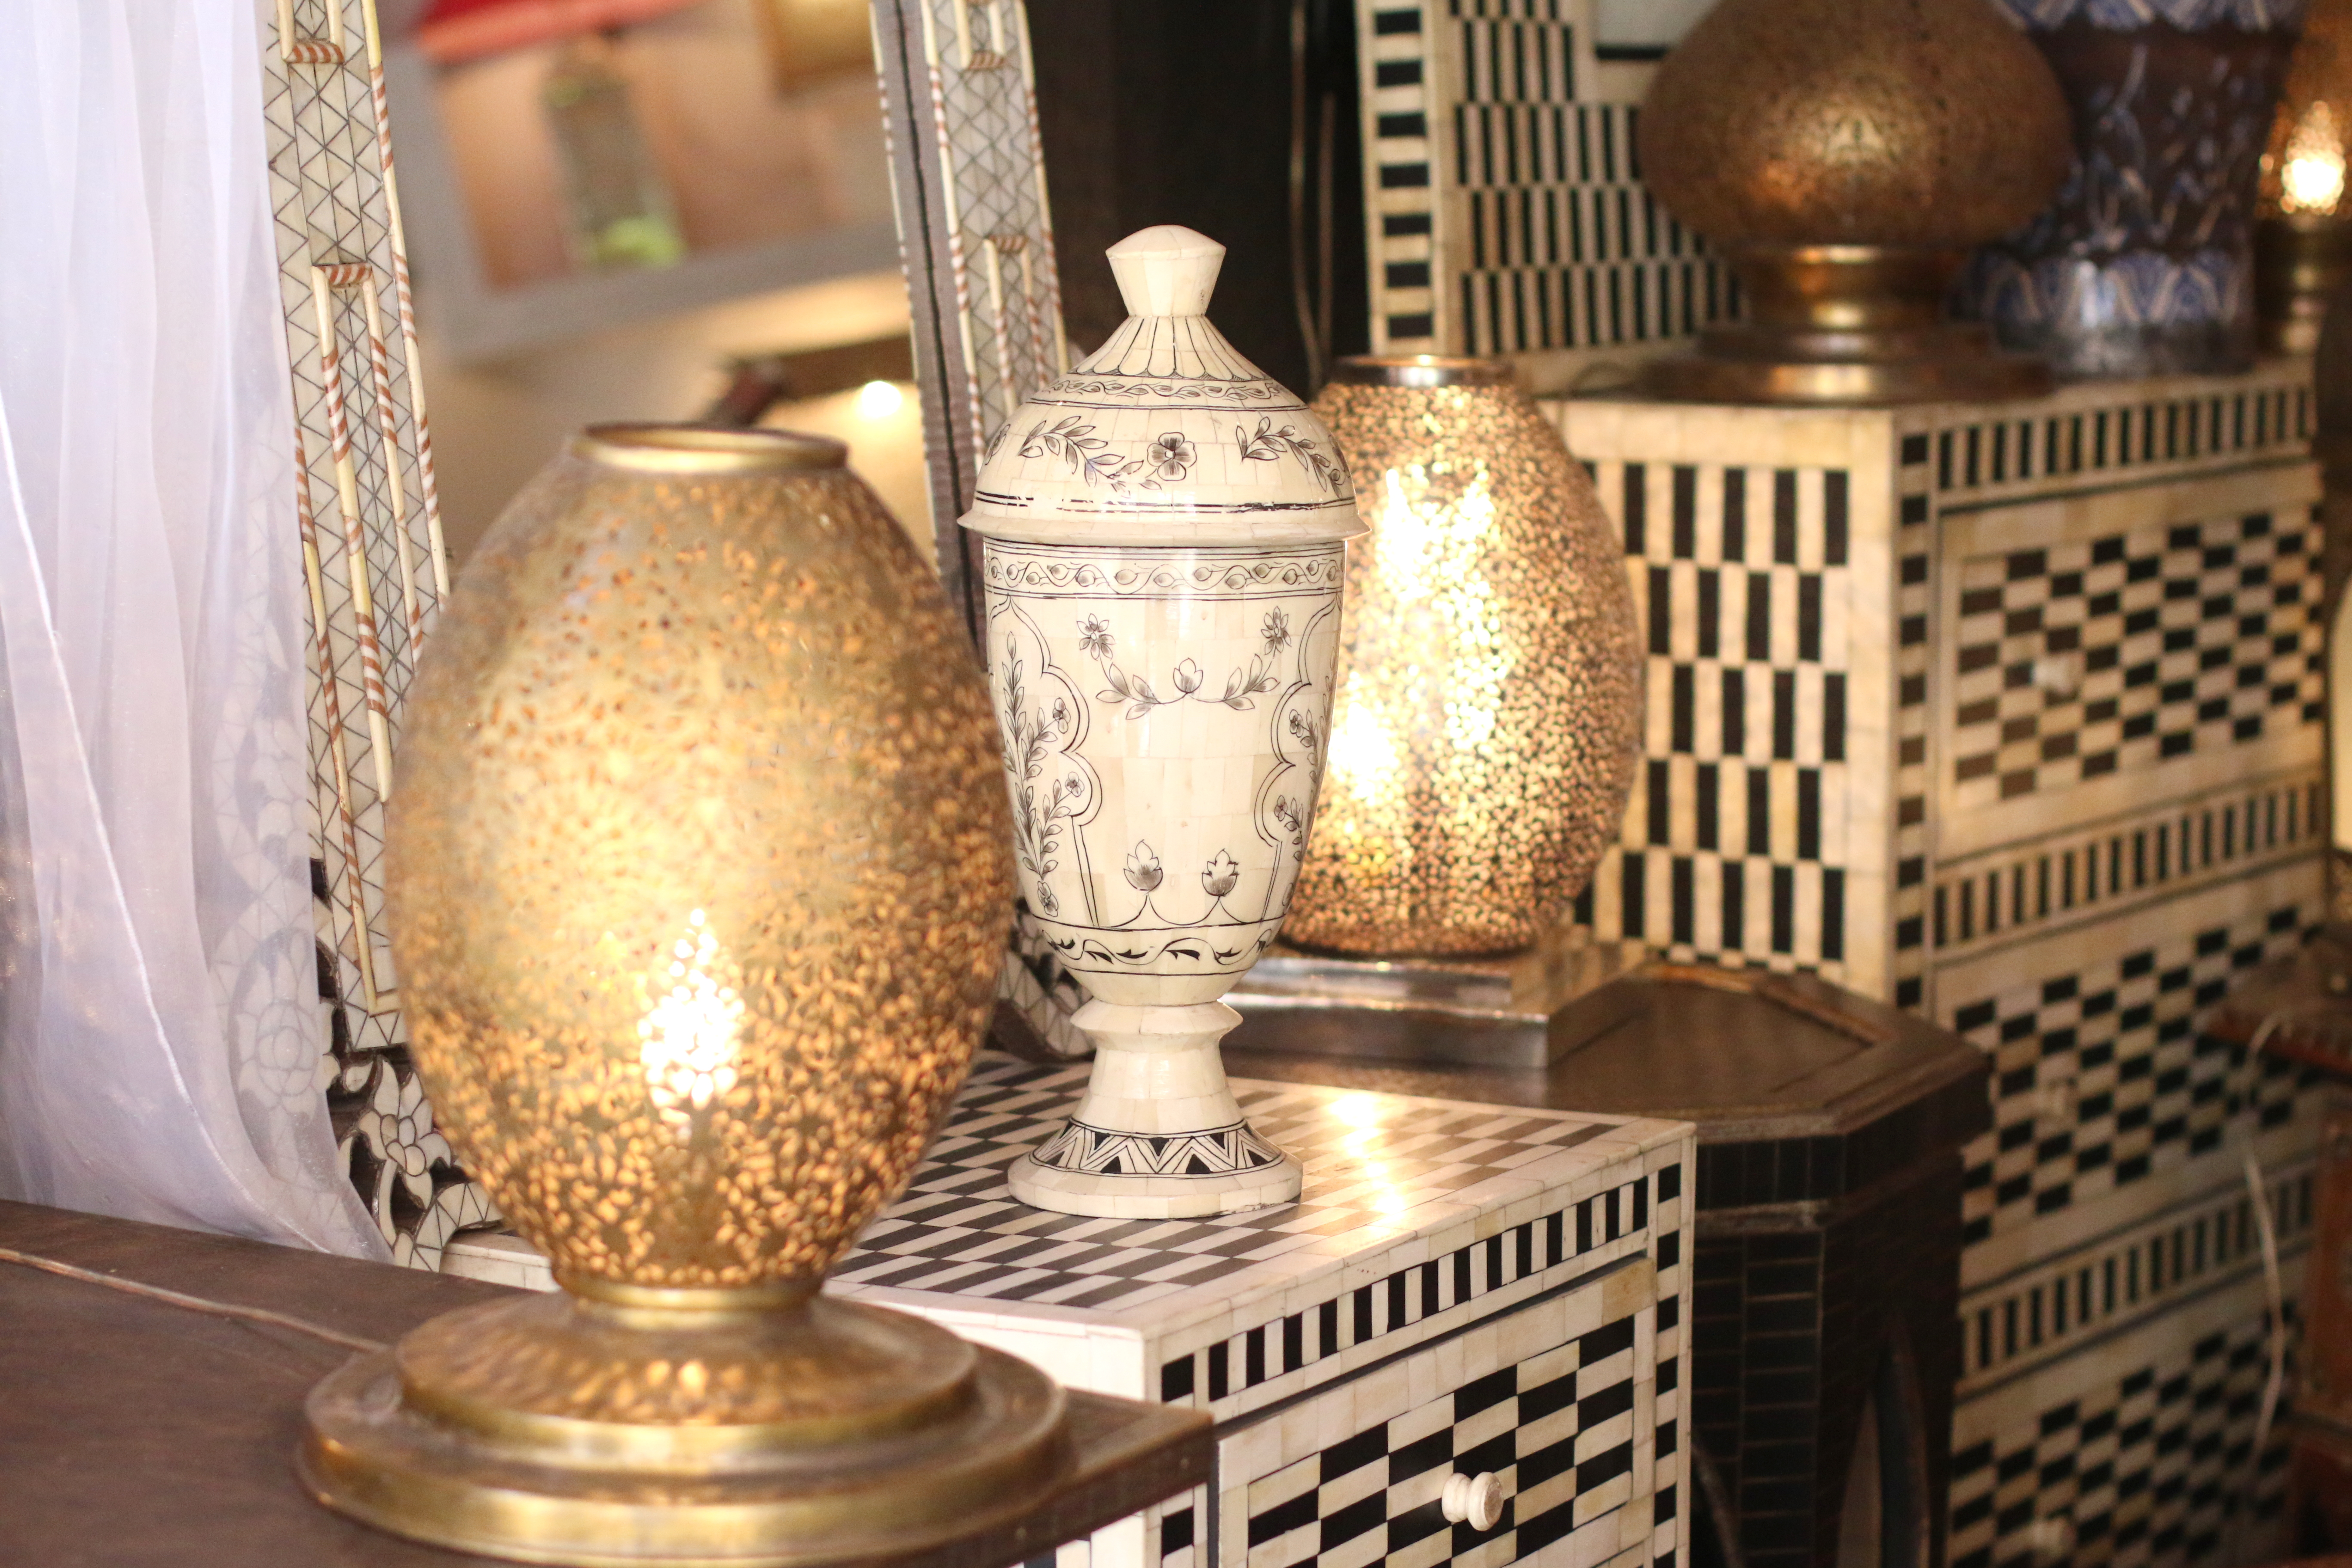 marrakech travel guide blogpost travel blog reiseblog